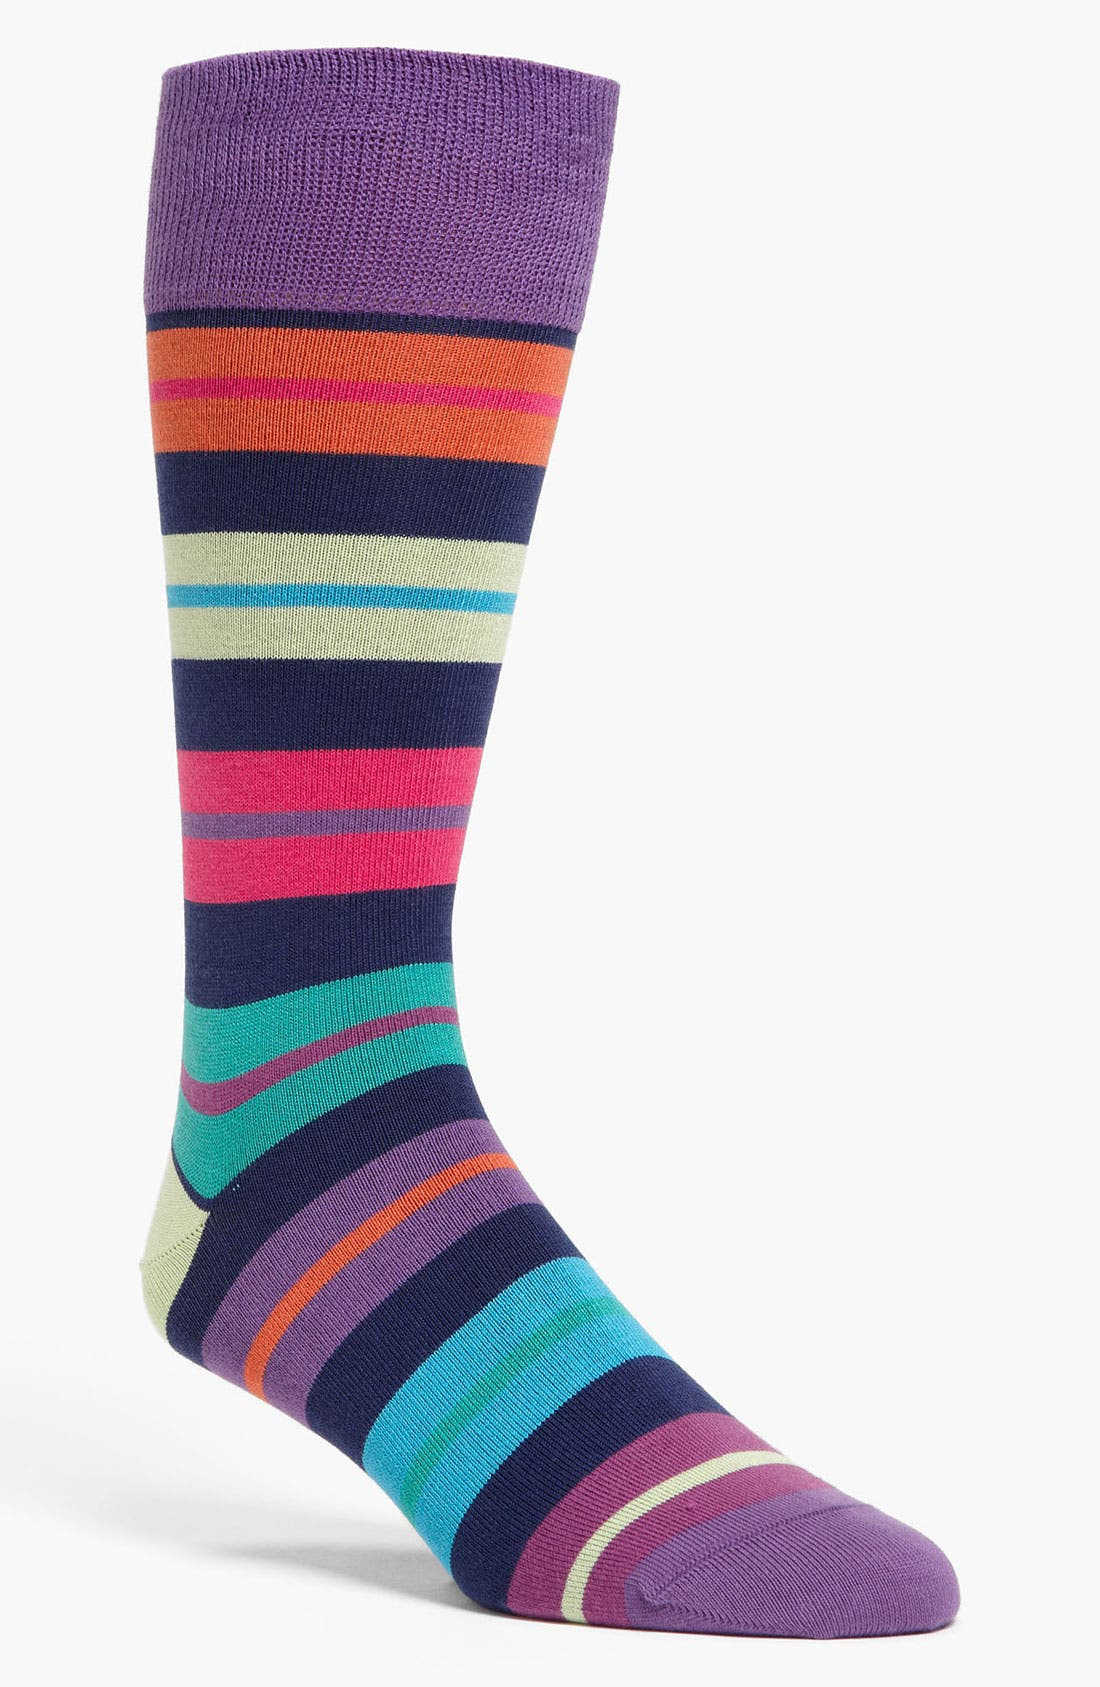 Alternate Image 1 Selected - Paul Smith Accessories Block Stripe Socks